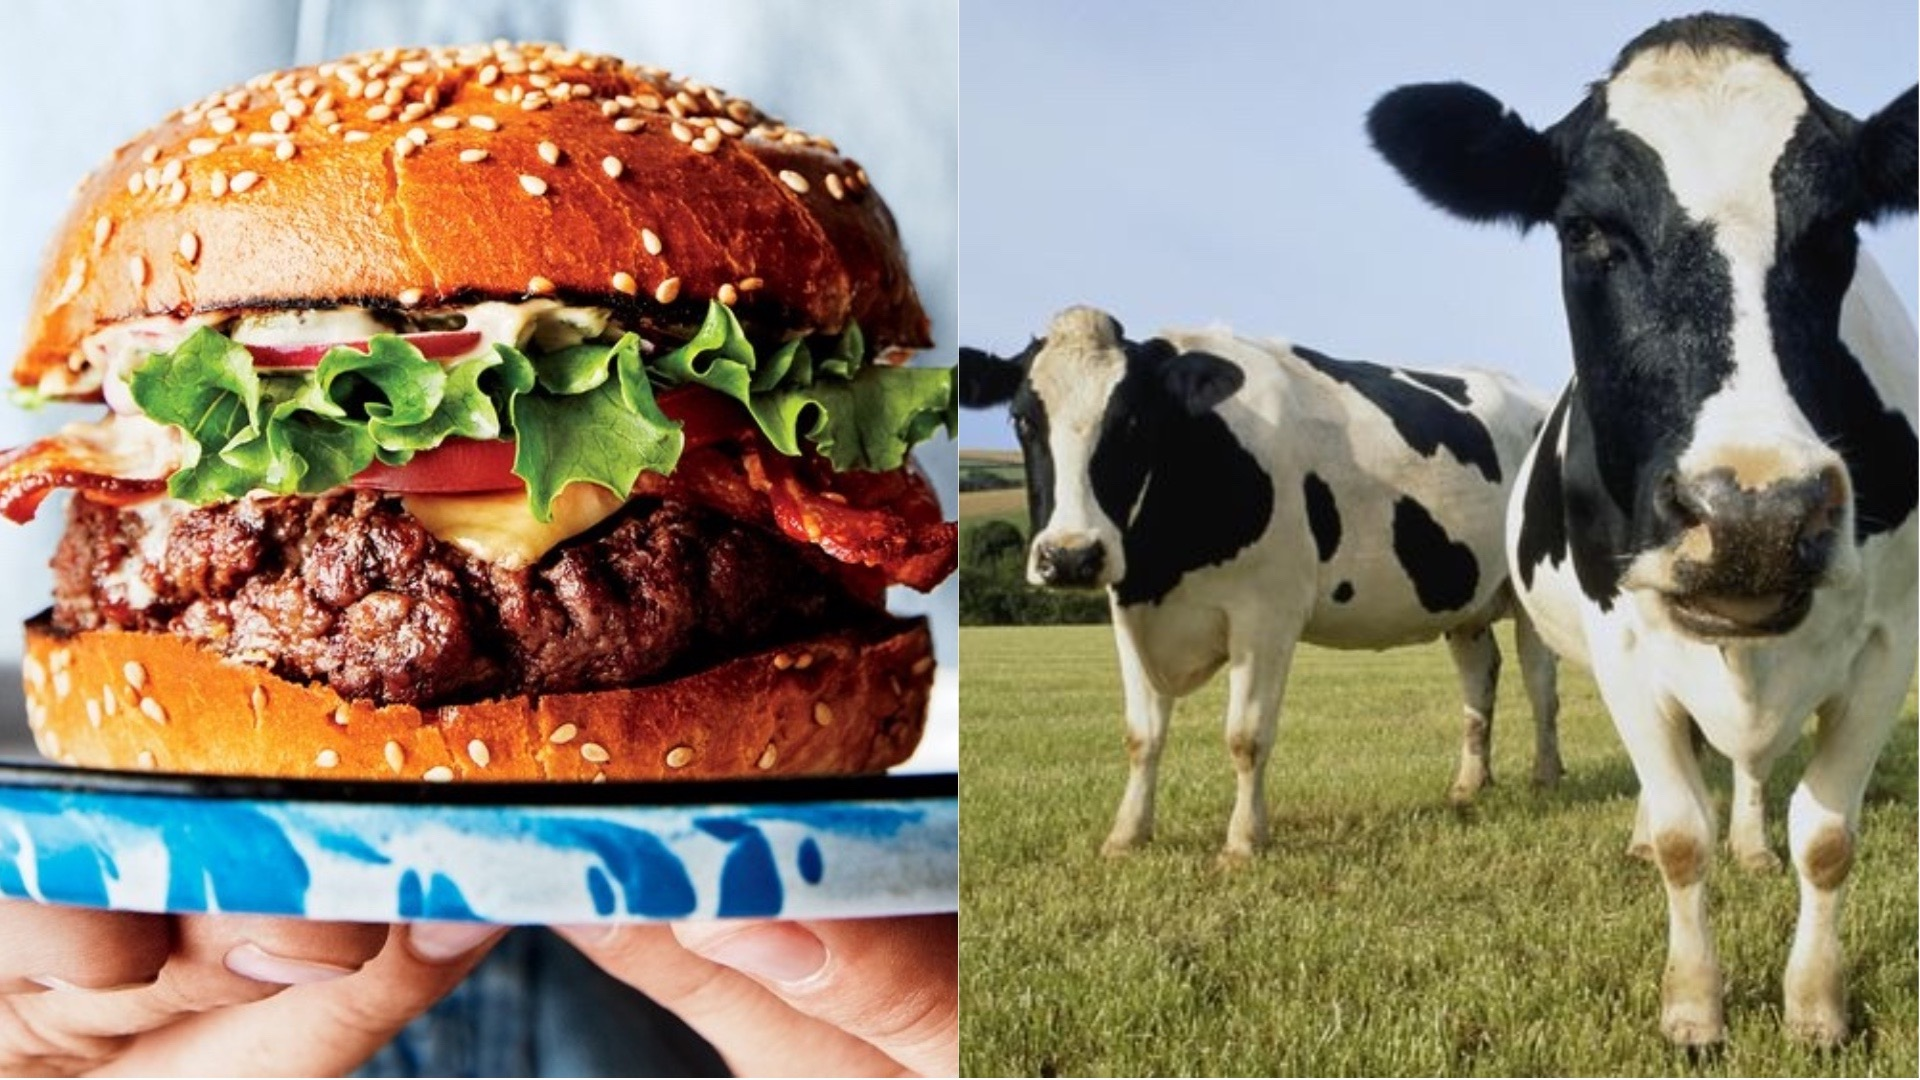 Burgers and cows.